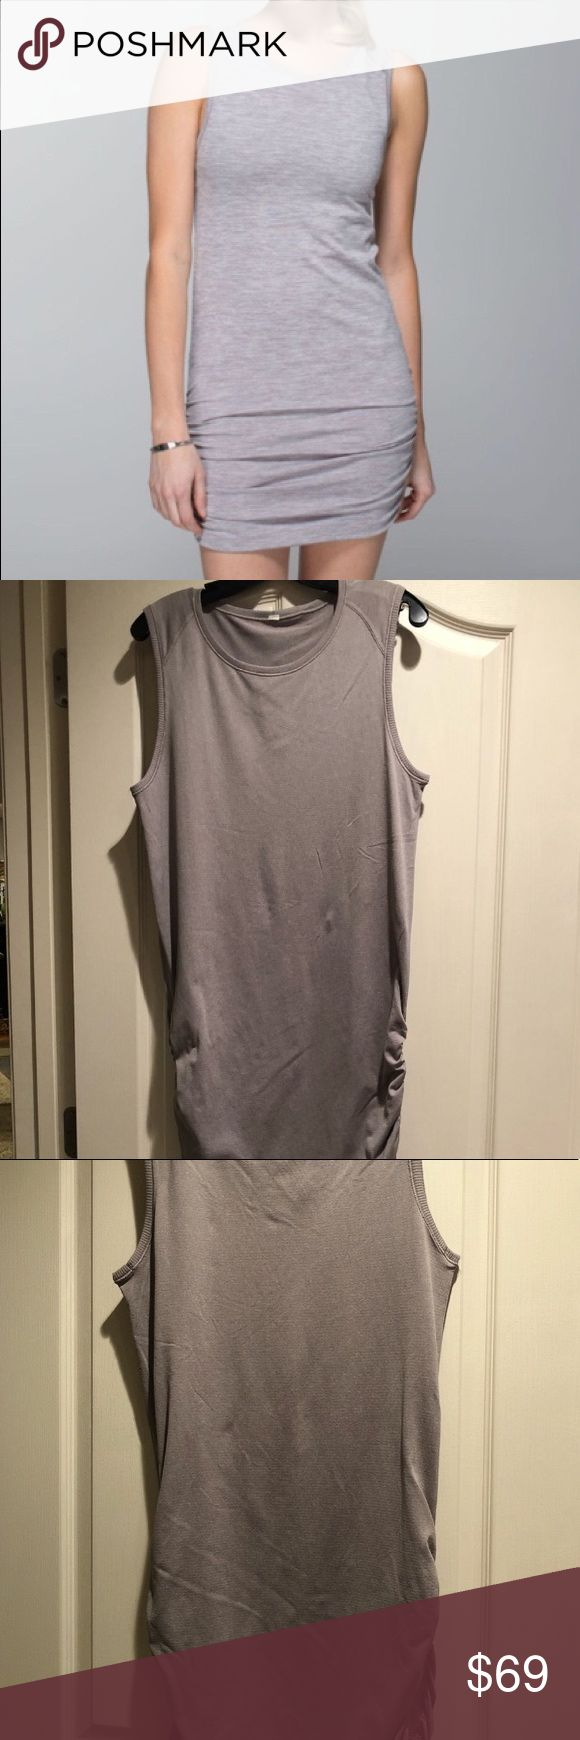 LULULEMON DRESS! Lululemon dress!! Excellent condition, extremely comfortable!  Ships within 1-2 days Non smoking household Any questions- feel free to ask! lululemon athletica Dresses